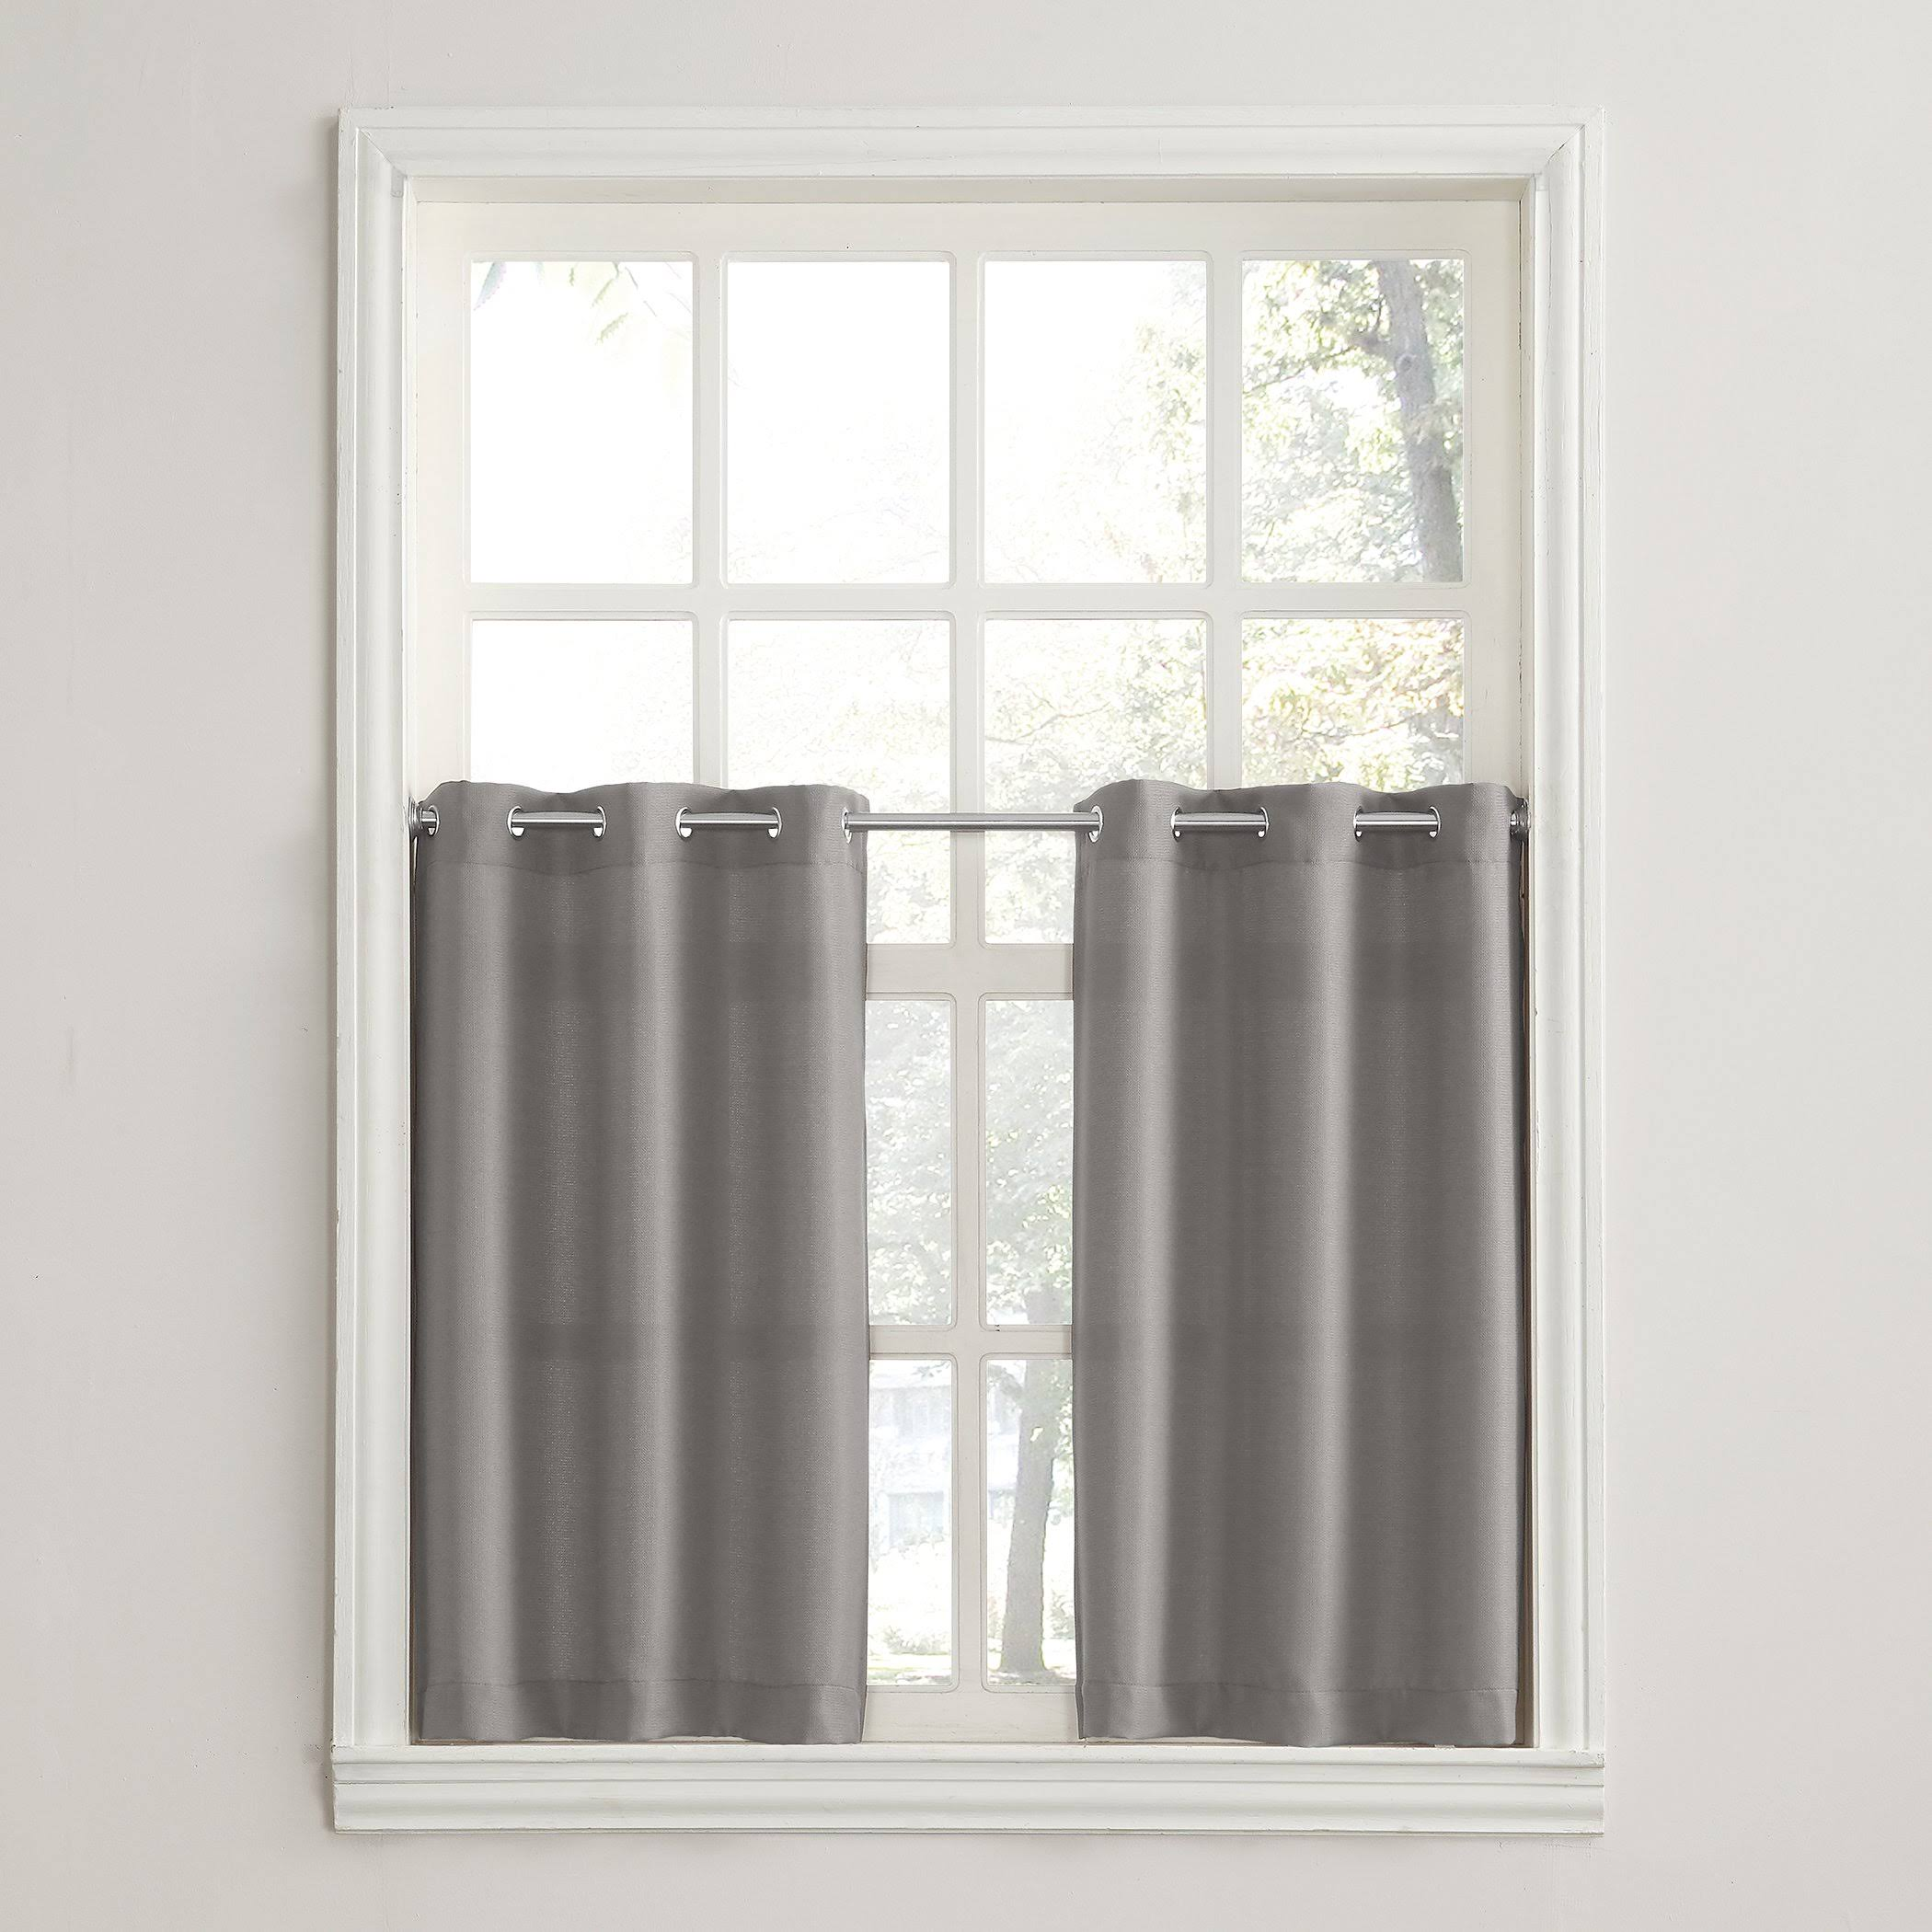 "S. Lichtenberg Montego Window Curtain Kitchen Curtains, Nickel Gray, 56"" x 36"" - 2 count"